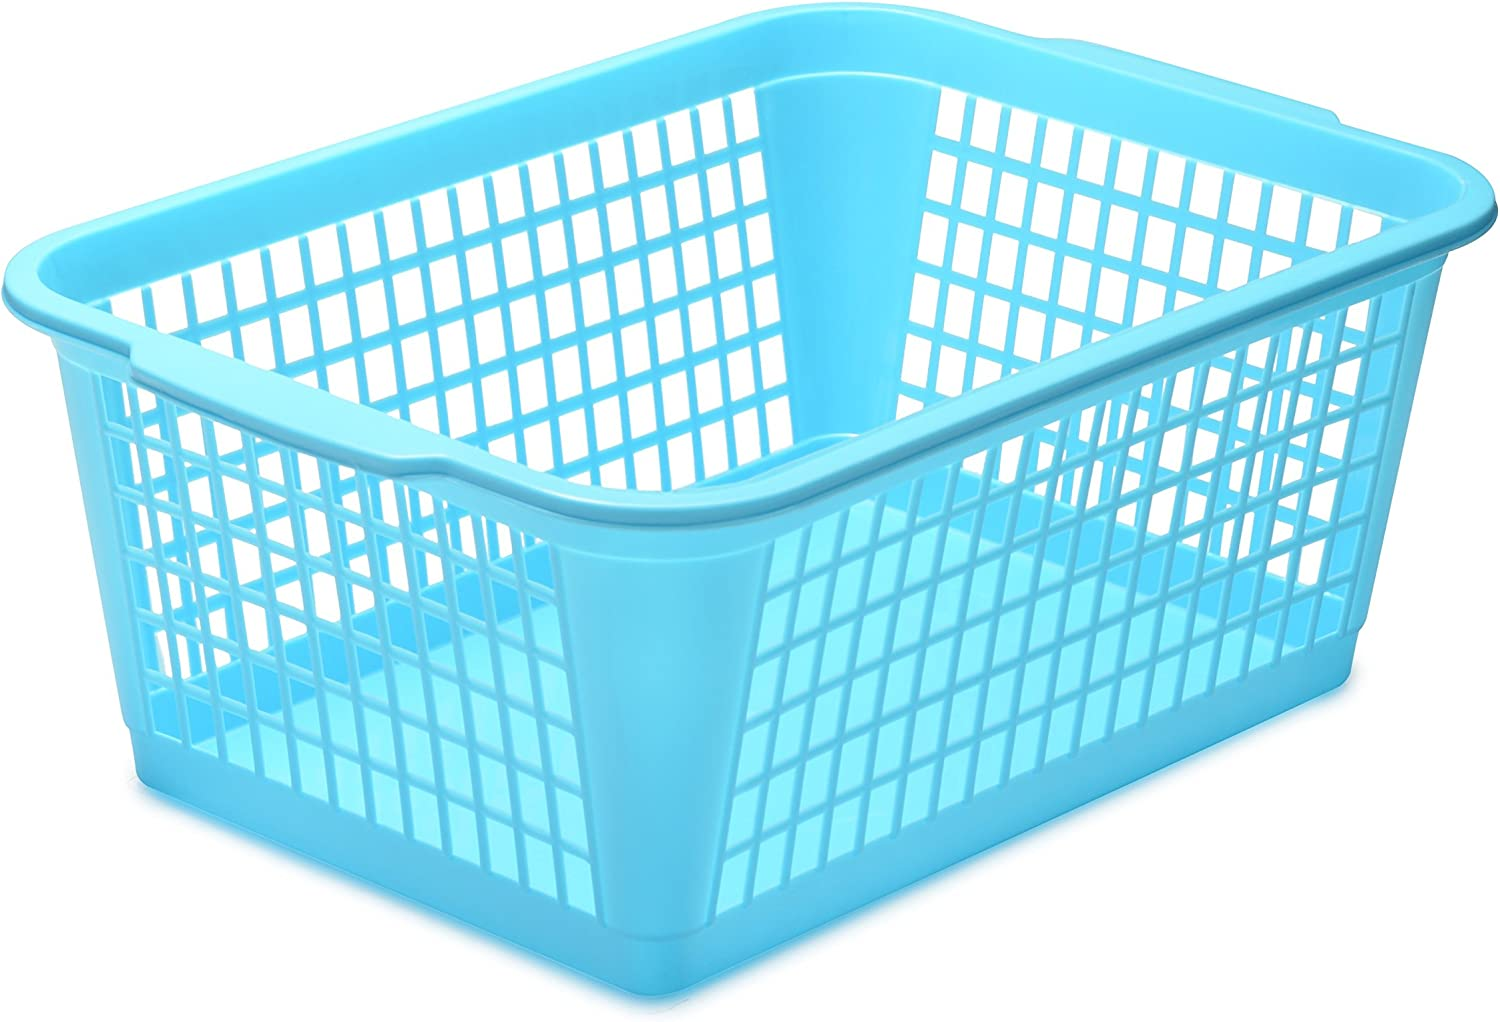 YBM Home Plastic Storage Basket for Office Drawer, Desktop and Classroom - Multipurpose Perforated Bin Tray Organizer for Shelves, Kitchen Pantry, Kids Room, and More 32-1184 Blue